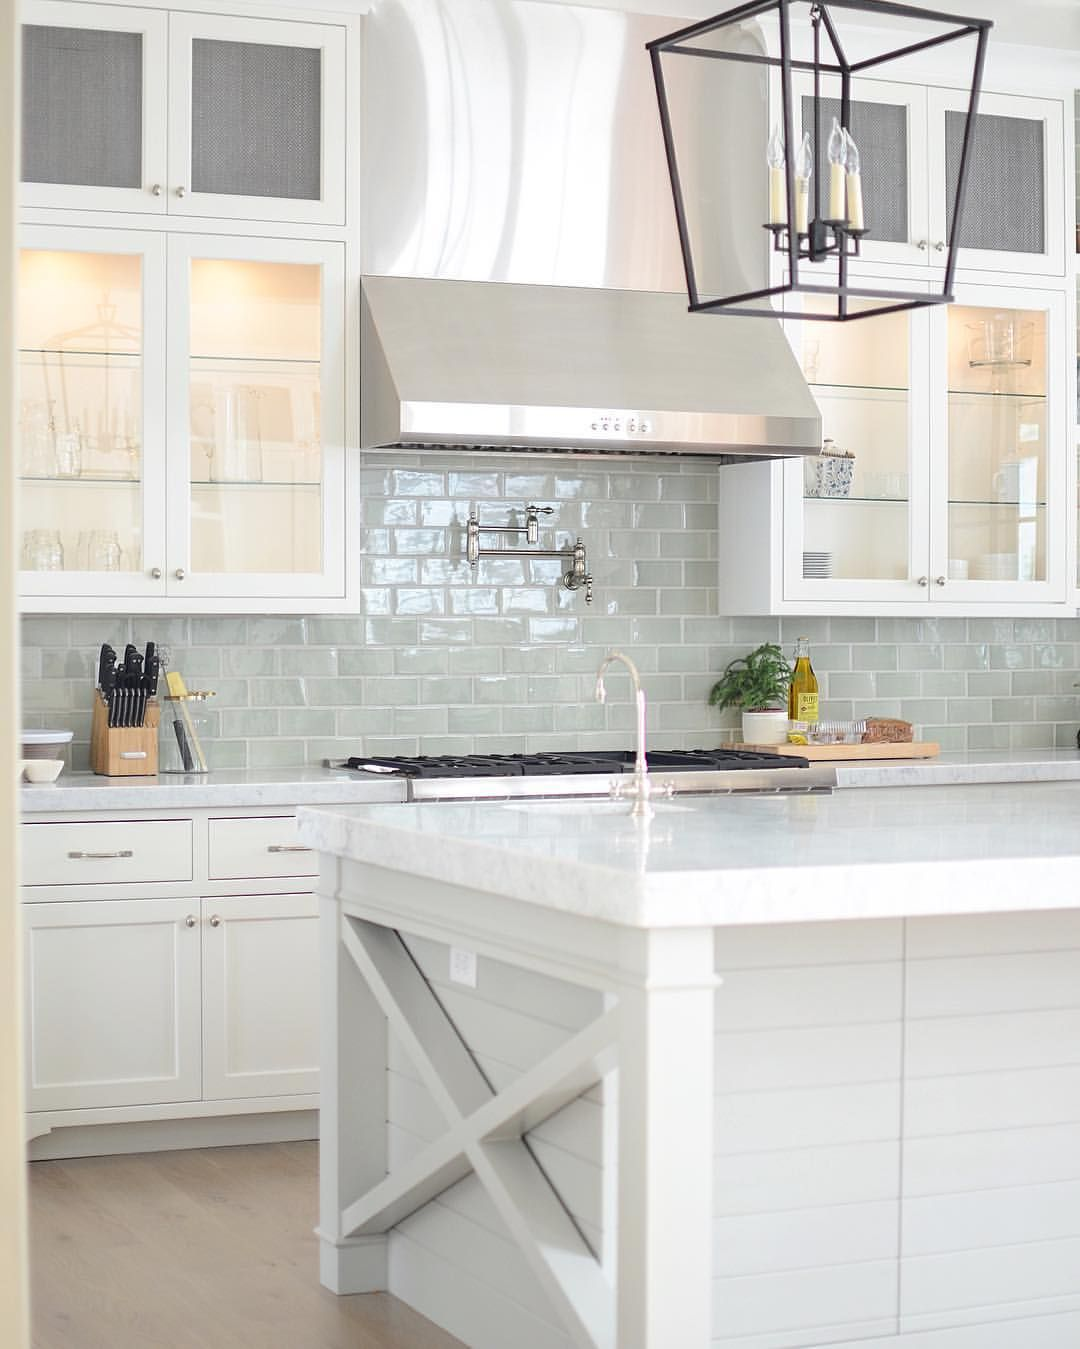 Bright white kitchen with pale blue subway tile backsplash White kitchen backsplash